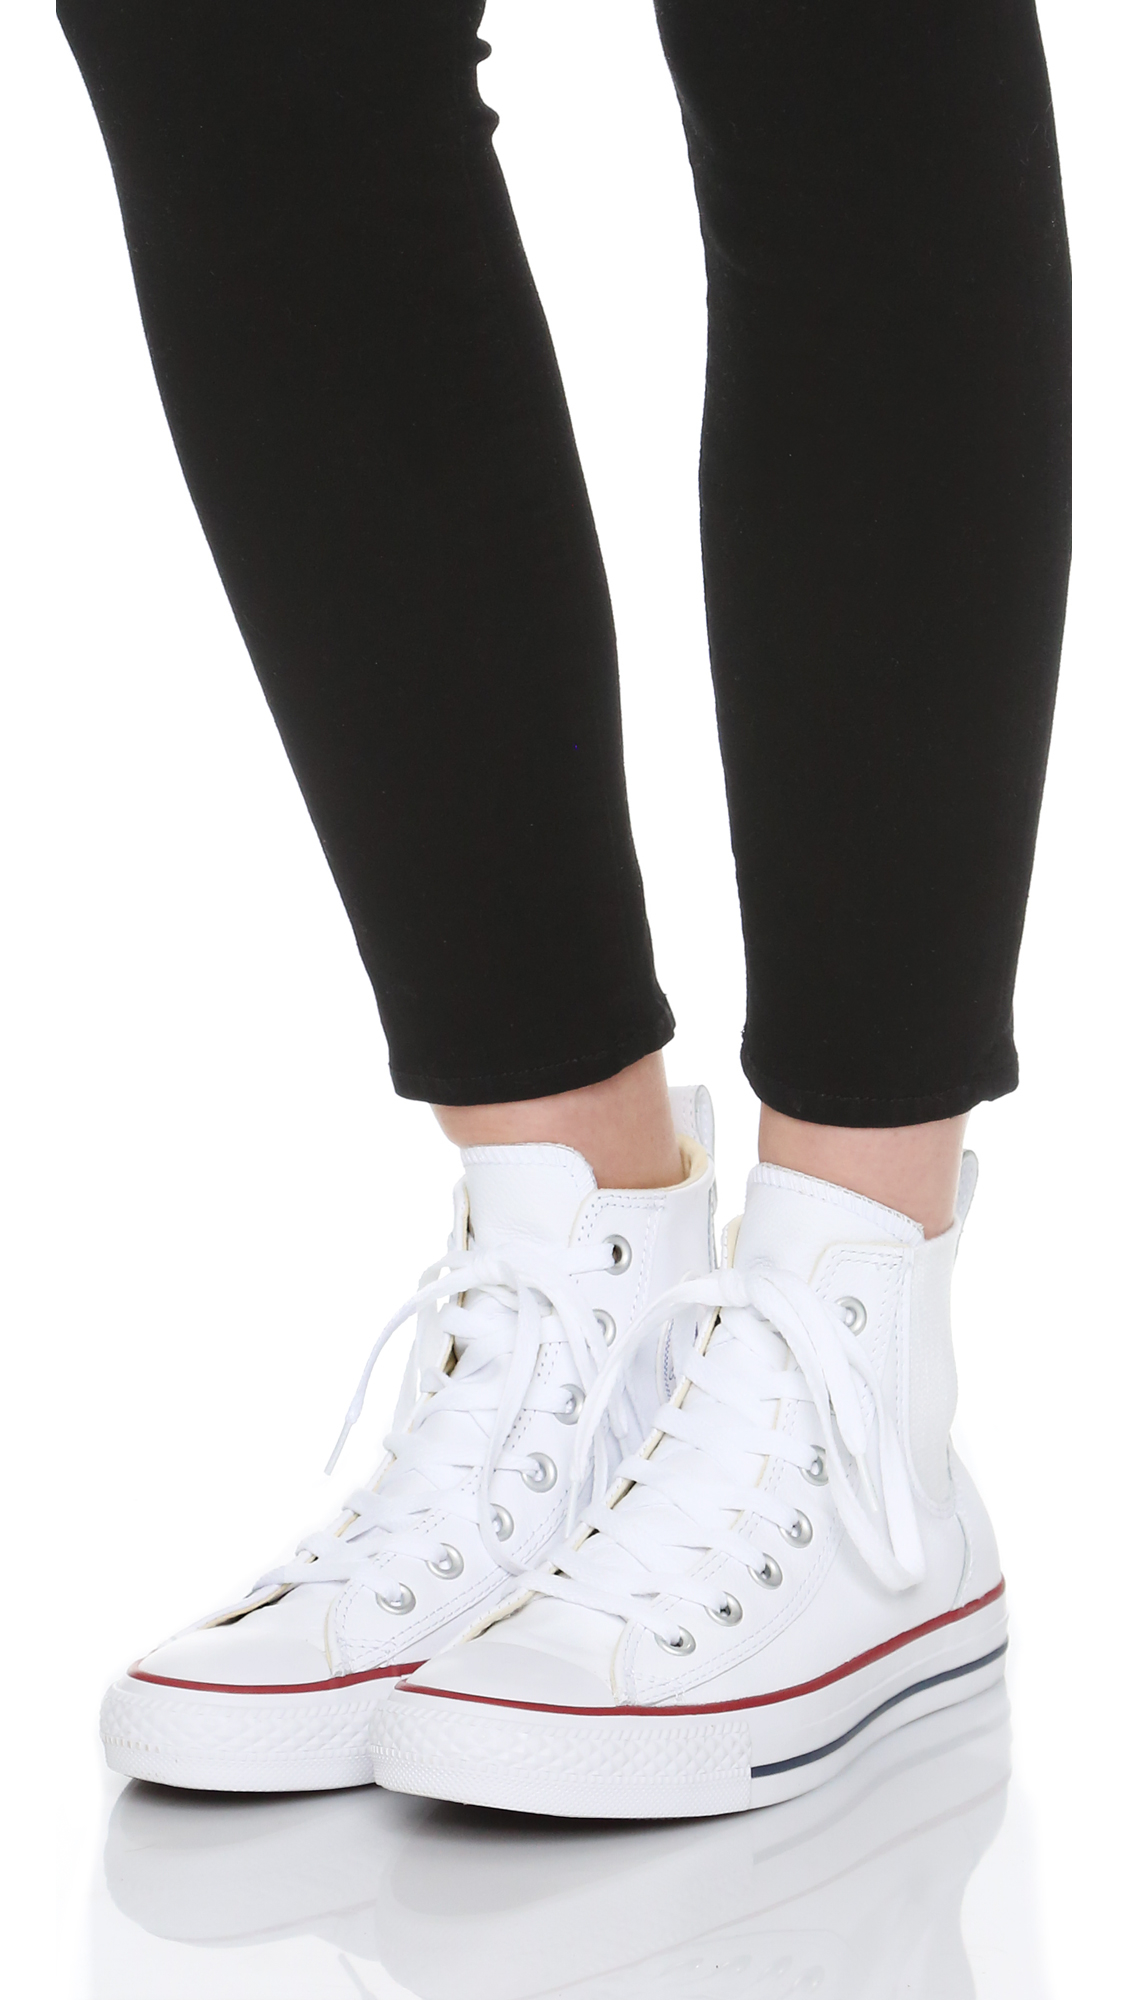 Converse Chuck Taylor All Star Chelsea Sneakers - Cream ...